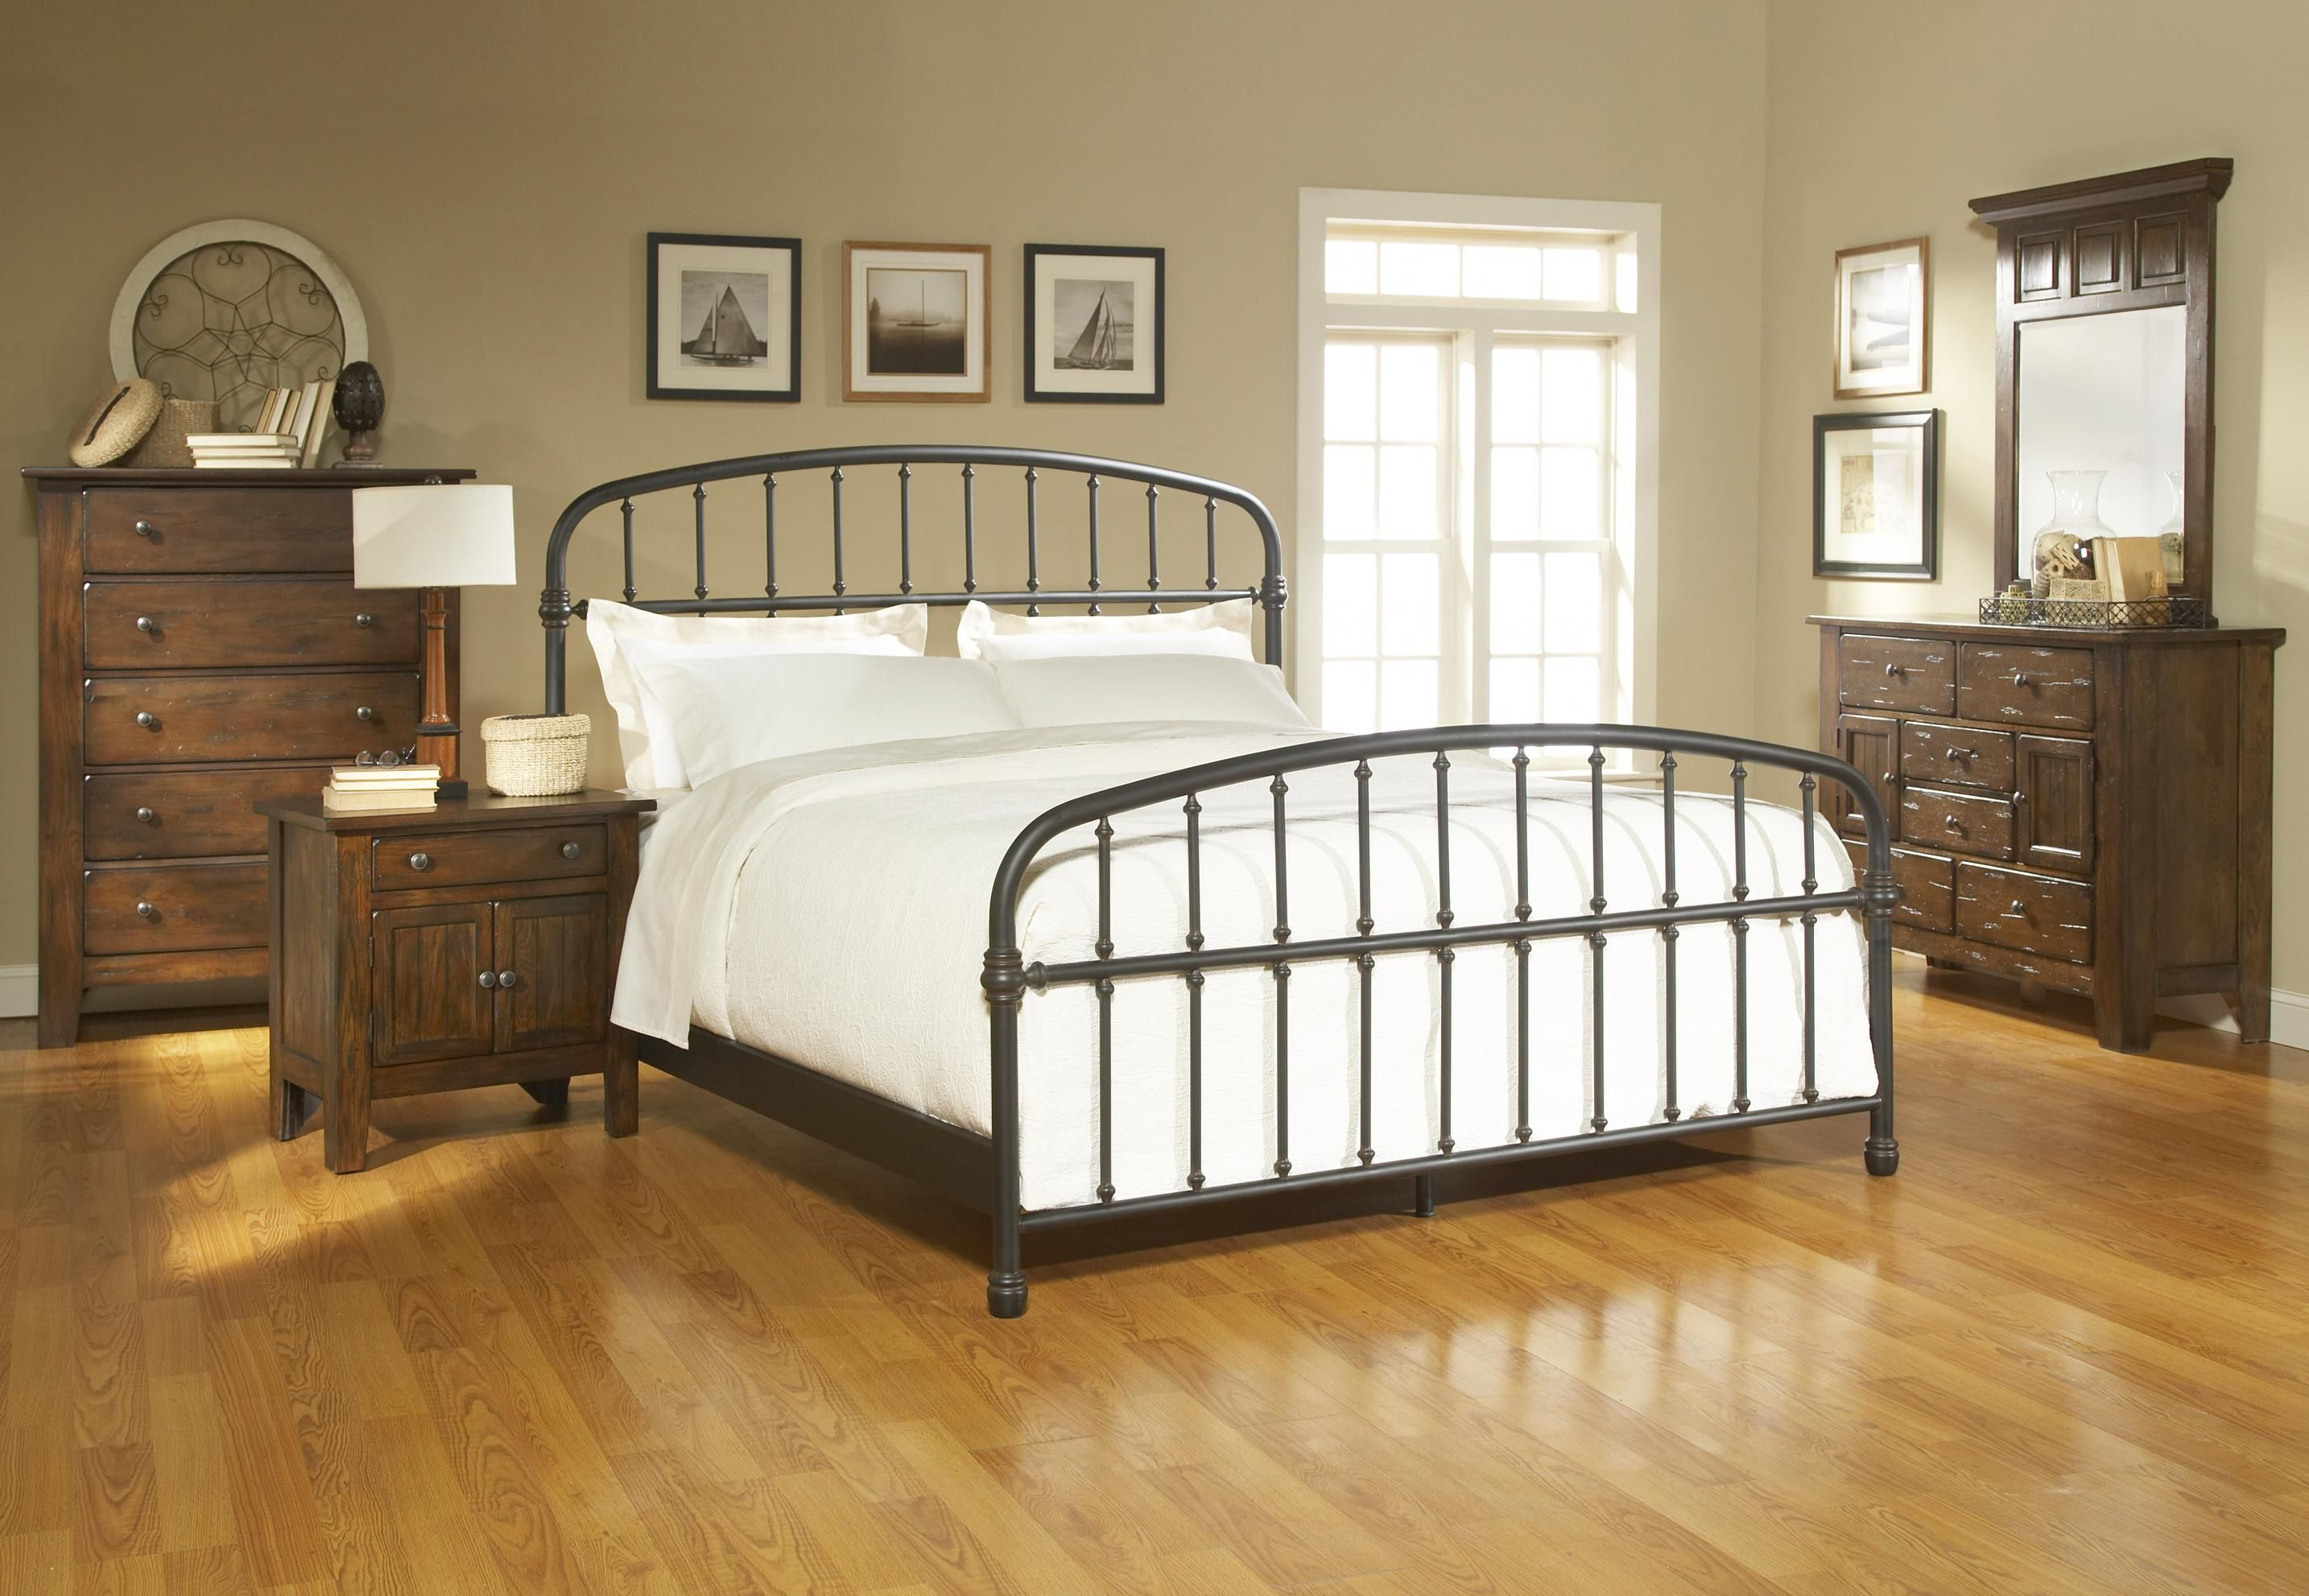 Best Attic Heirlooms California King Metal Bed By Broyhill 400 x 300